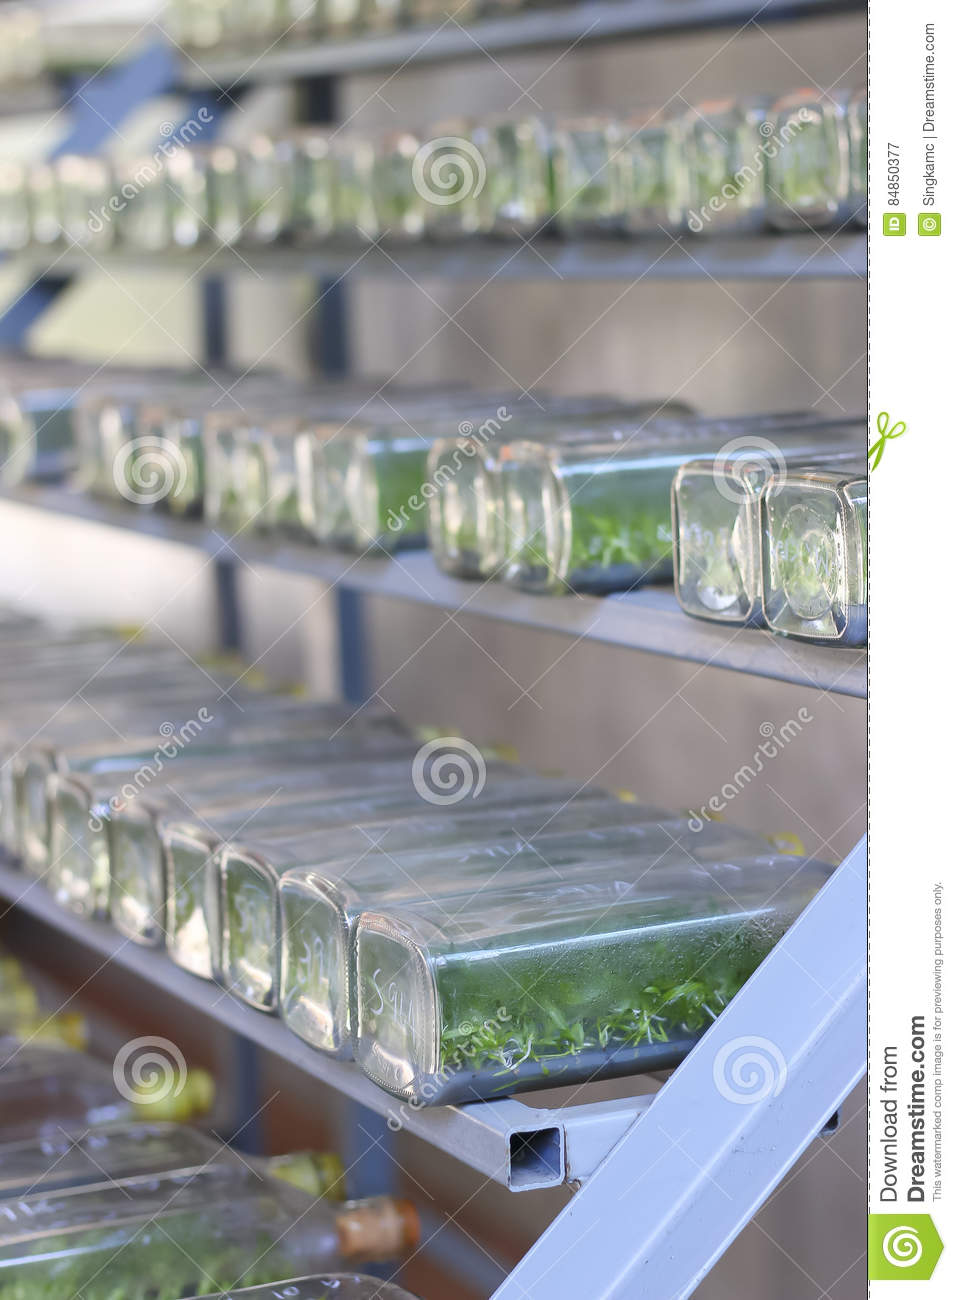 Stock Photo - Plant Tissue Culture Growing In A Bottle On